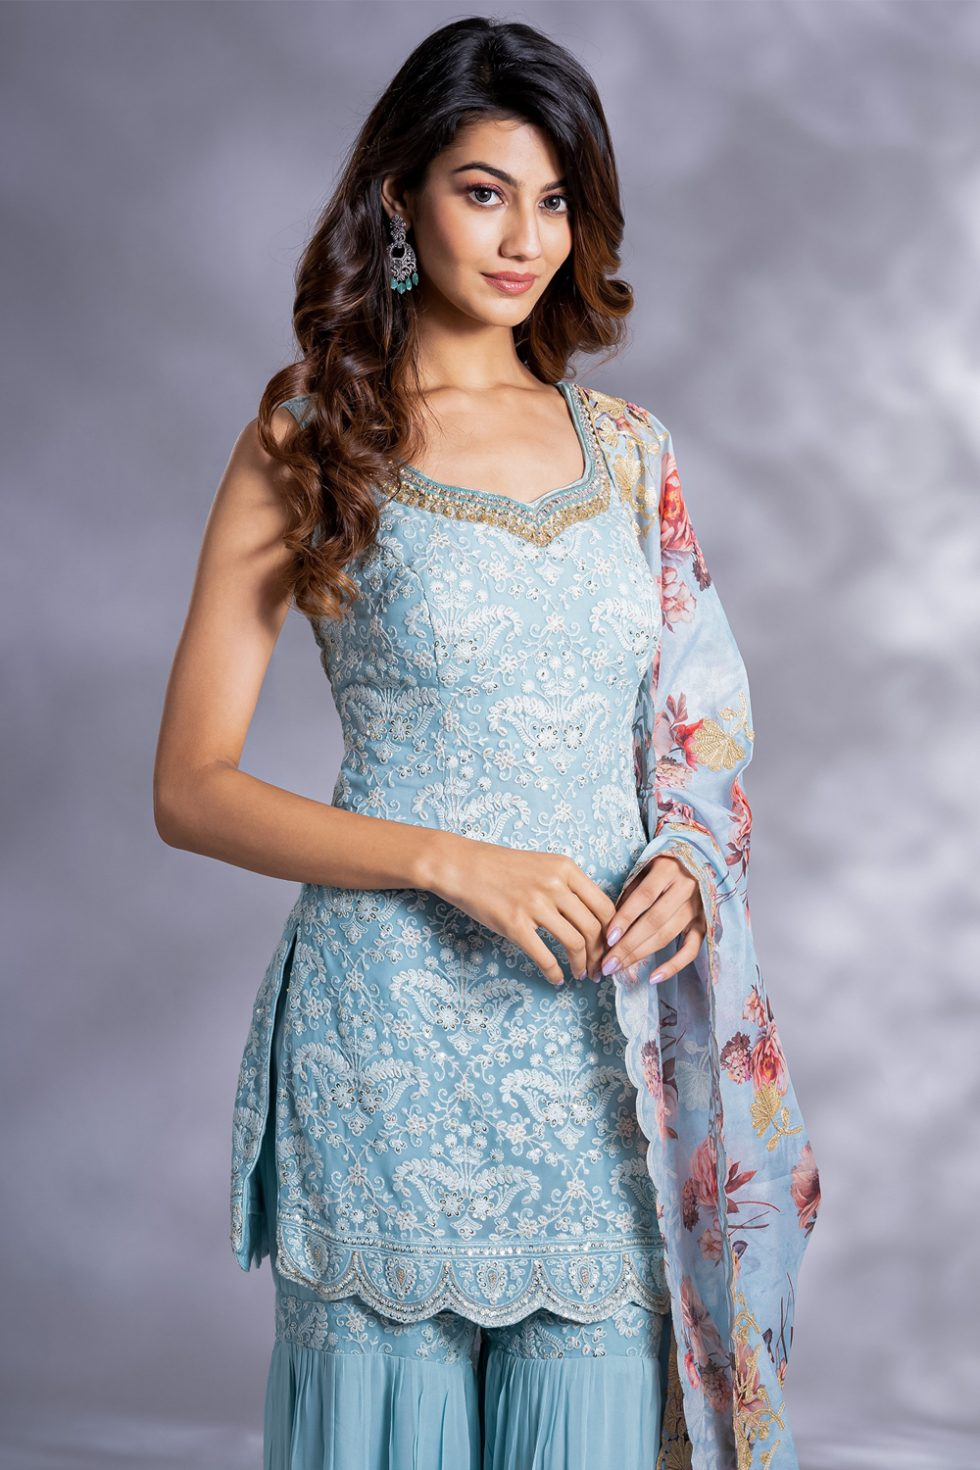 Powder blue tiered sharara pant set with a chikan kurta top paired with a printed dupatta with gold embellishments.